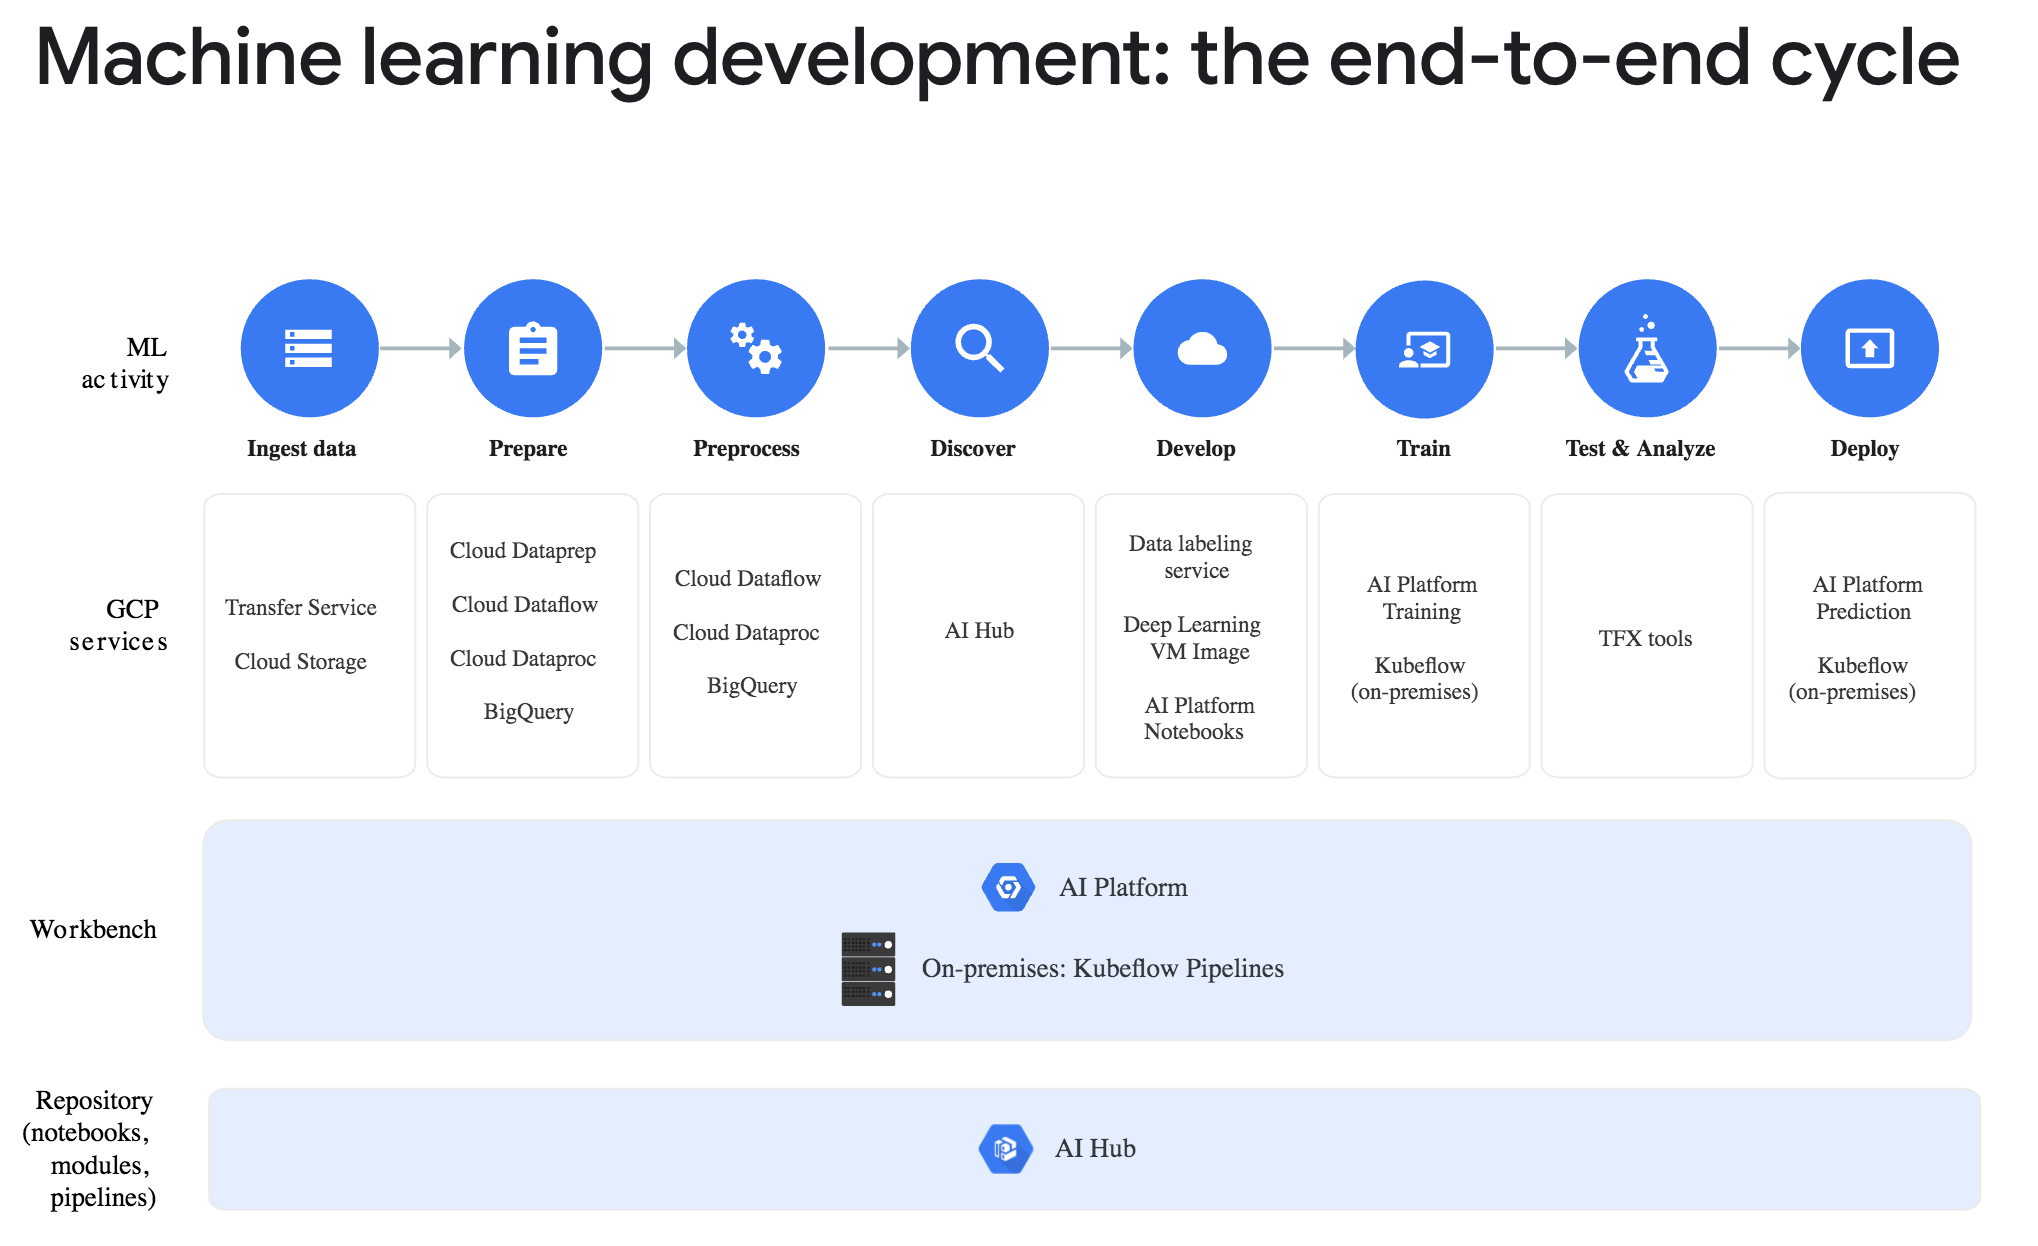 Google AI Platform offerings as of January 2020